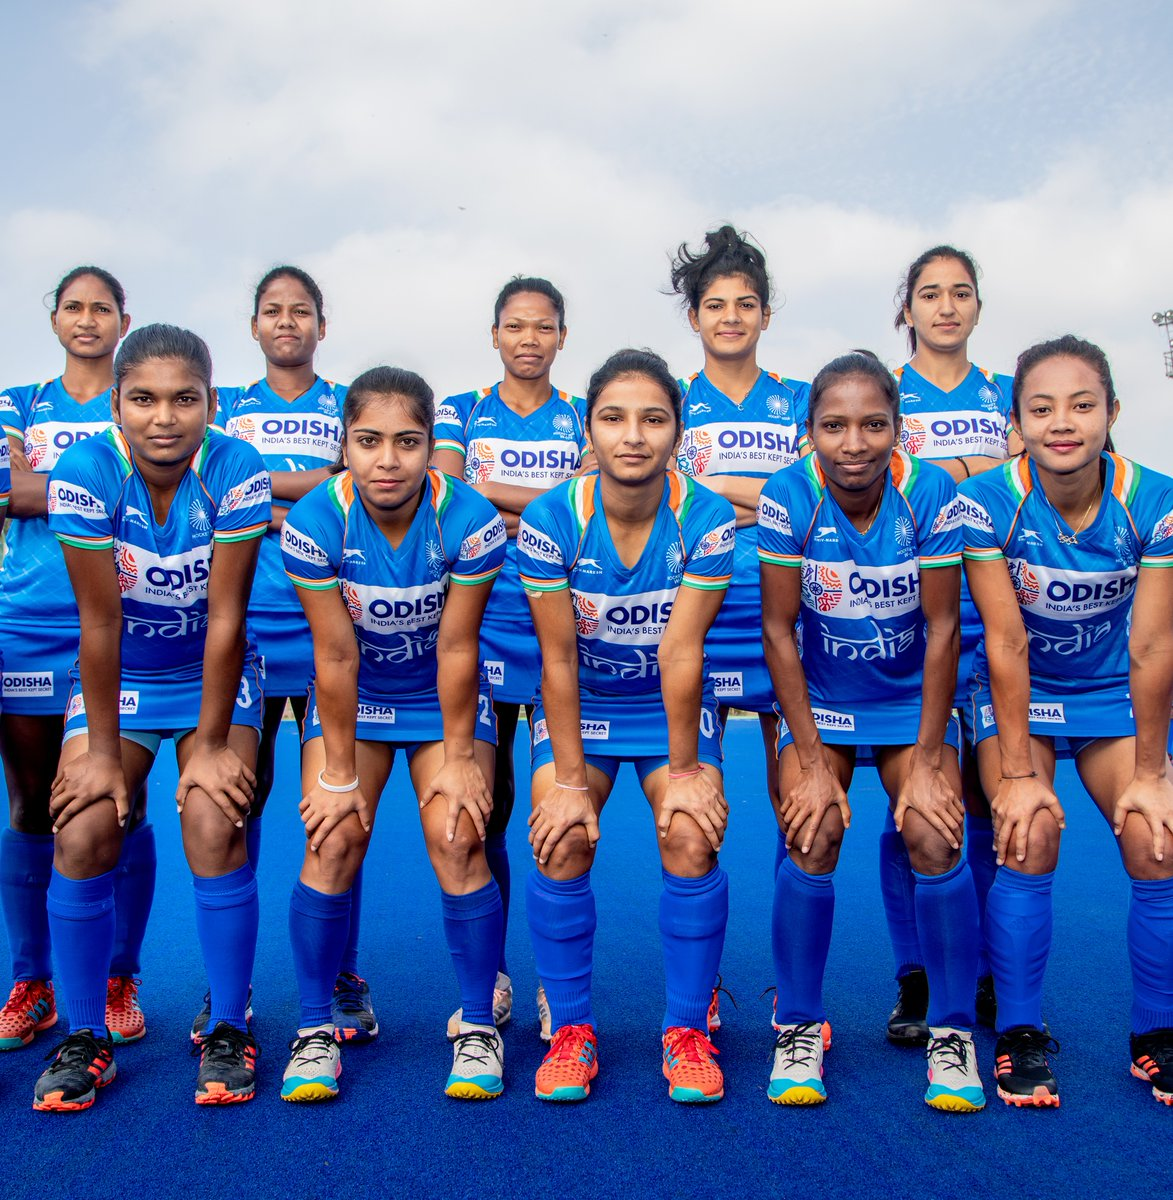 RT   #HockeyIndia   They trick opponents on the field, out of the blue.   𝐷𝑖𝑠𝑐𝑙𝑎𝑖𝑚𝑒𝑟: 𝑇ℎ𝑒 𝑖𝑚𝑎𝑔𝑒 𝑤𝑎𝑠 𝑡𝑎𝑘𝑒𝑛 𝑝𝑟𝑖𝑜𝑟 𝑡𝑜 𝑀𝑎𝑟𝑐ℎ 2020.  #IndiaKaGame CMO_Odisha IndiaSports Media_SAI sports_odisha <br>http://pic.twitter.com/FoPpeJJc3y